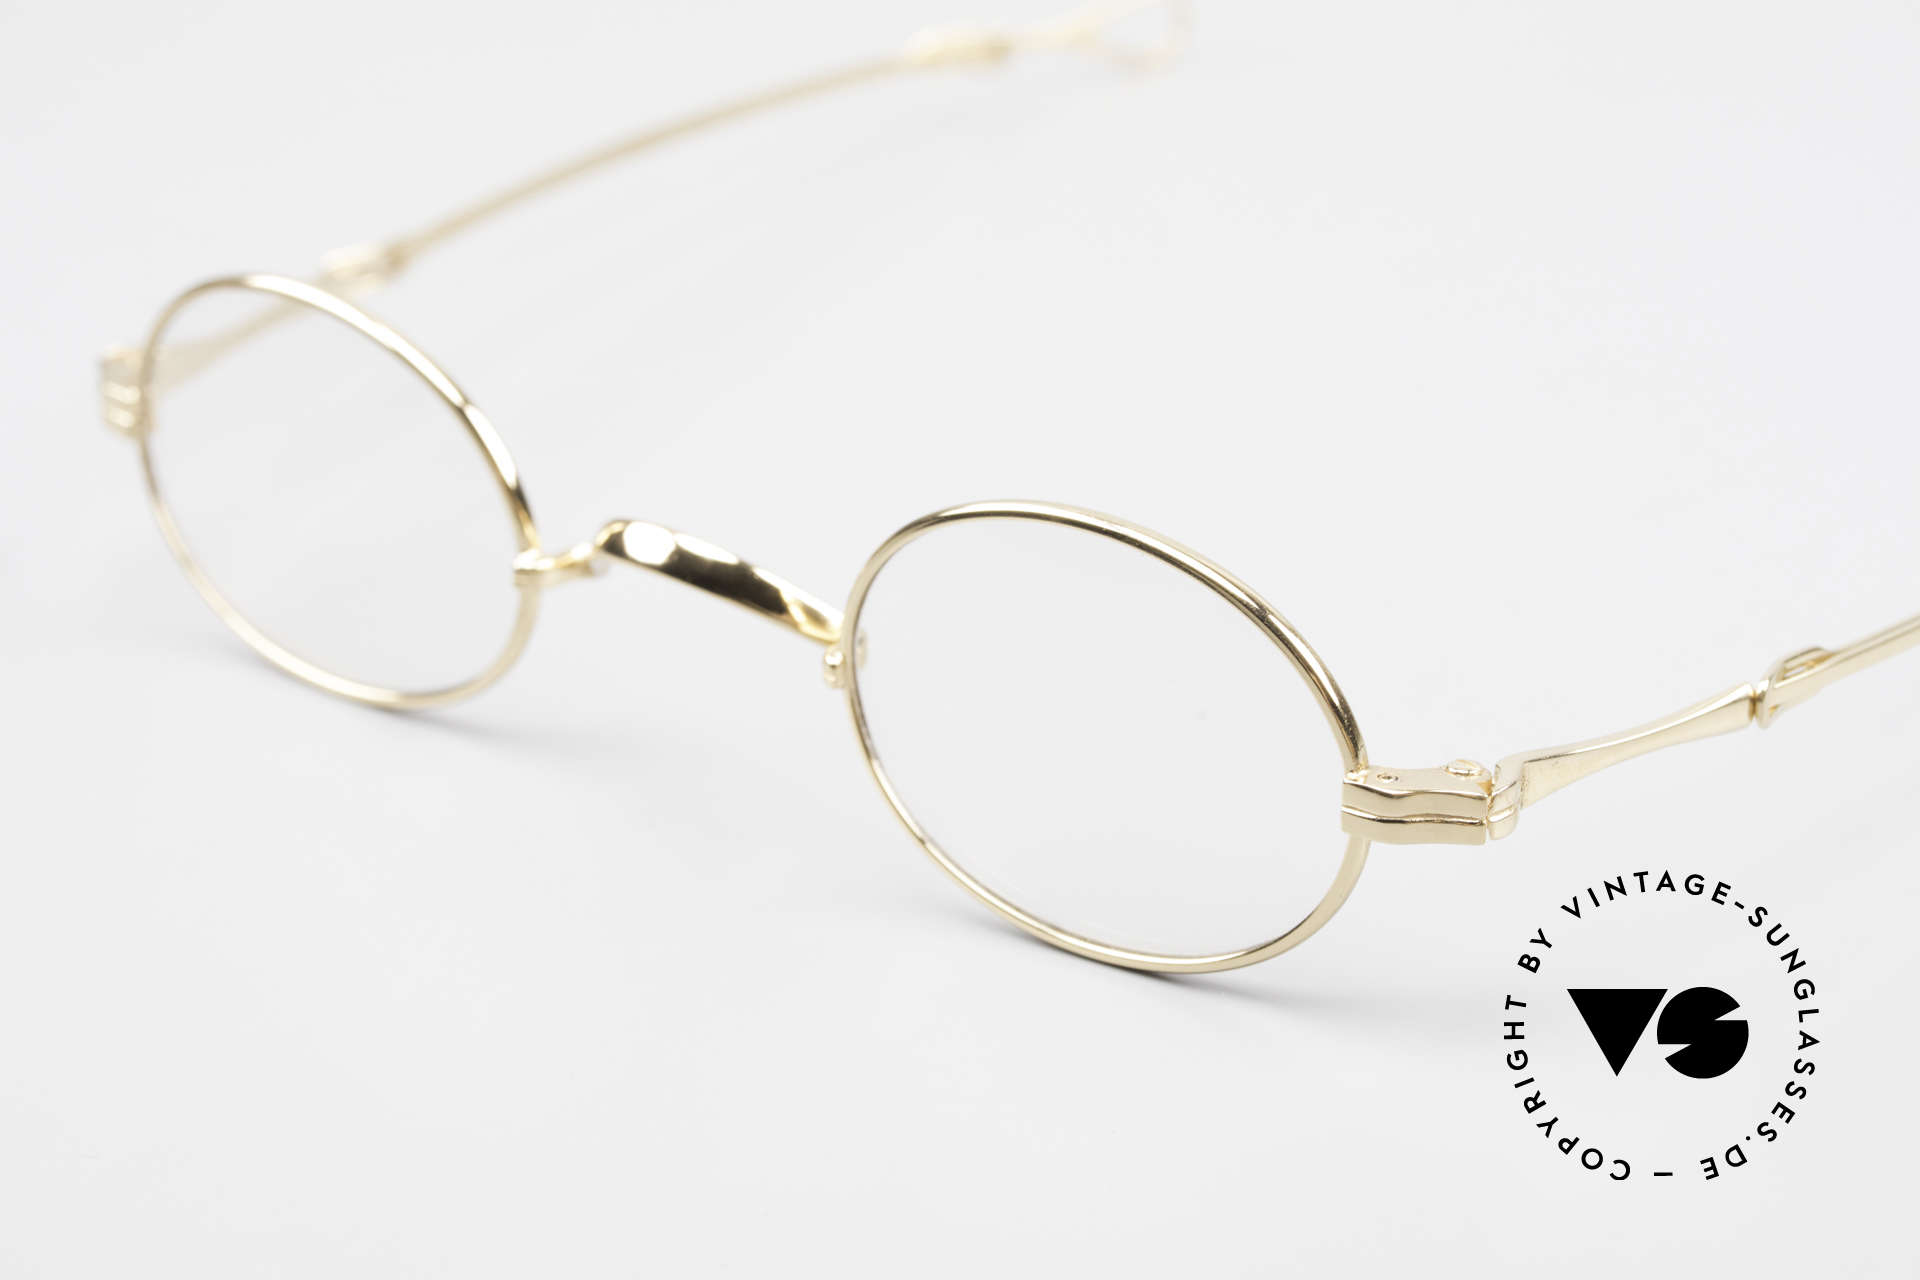 Lunor I 04 Telescopic XS Gold Glasses Slide Temples, an approx. 20 years old UNWORN pair for lovers of quality, Made for Men and Women